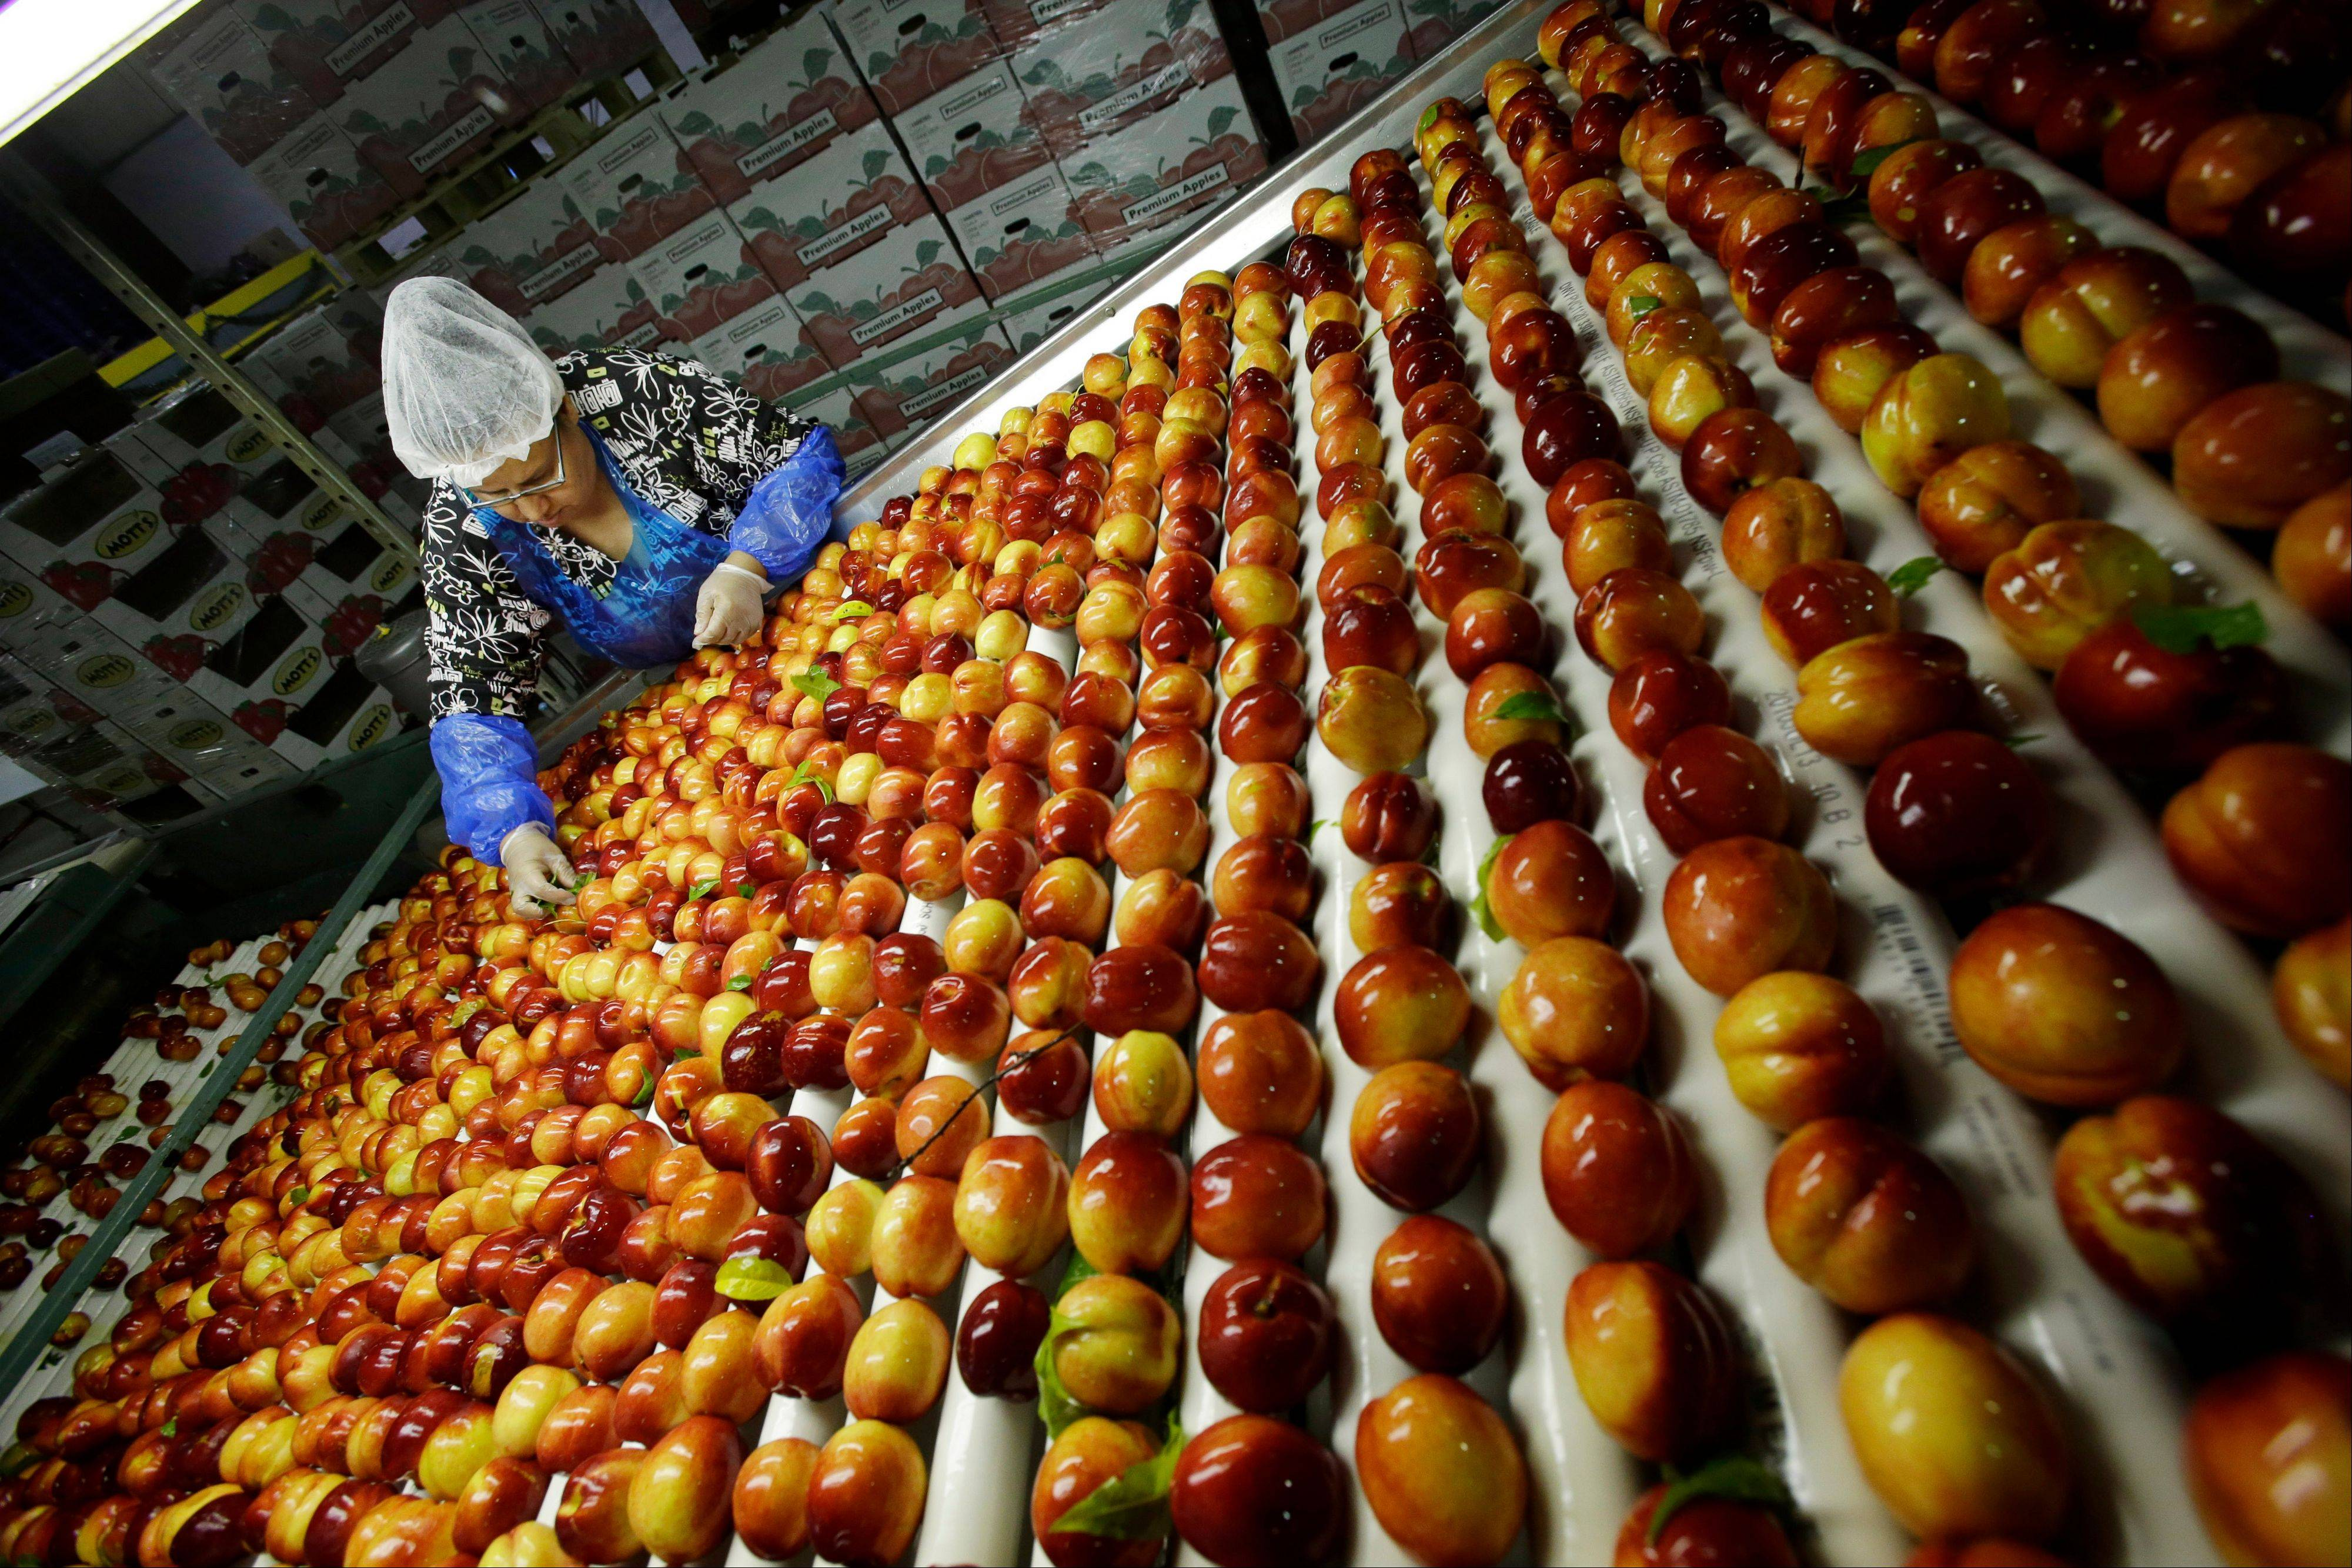 A worker removes leaves as nectarines get sorted for packaging at Eastern ProPak Farmers Cooperative in Glassboro, N.J. The U.N. food agency said Wednesday that one-third of all food produced in the world gets wasted, amounting to a loss of $750 billion a year.